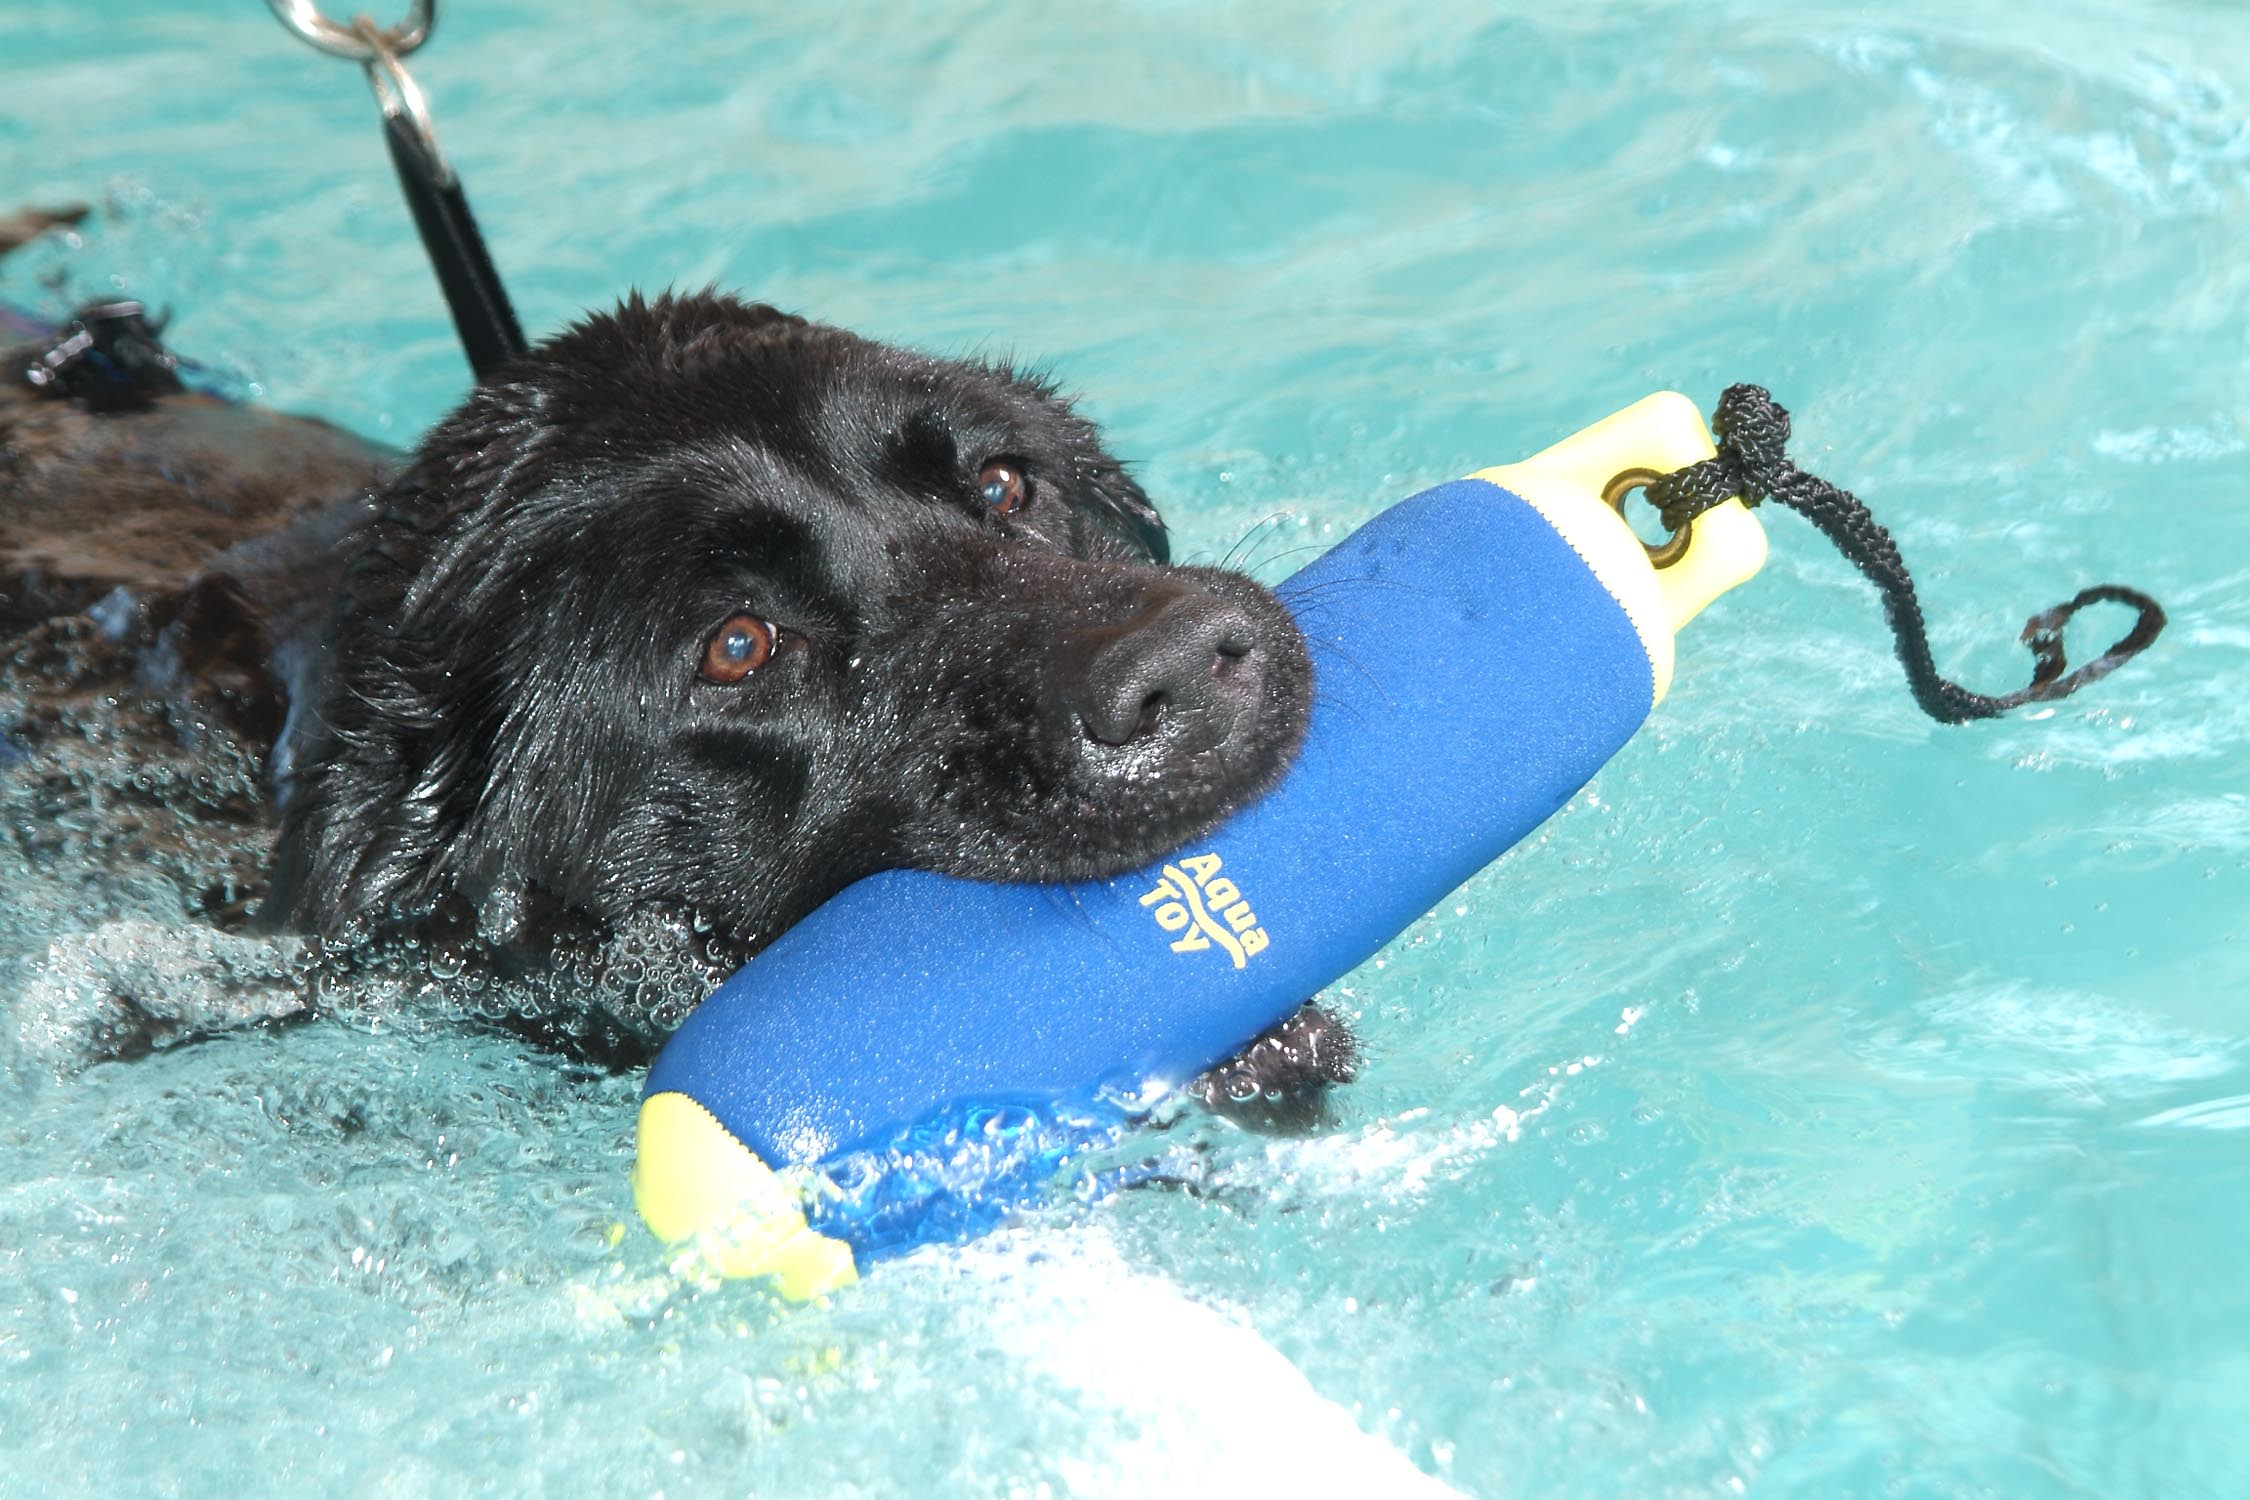 Lab swimming with toy